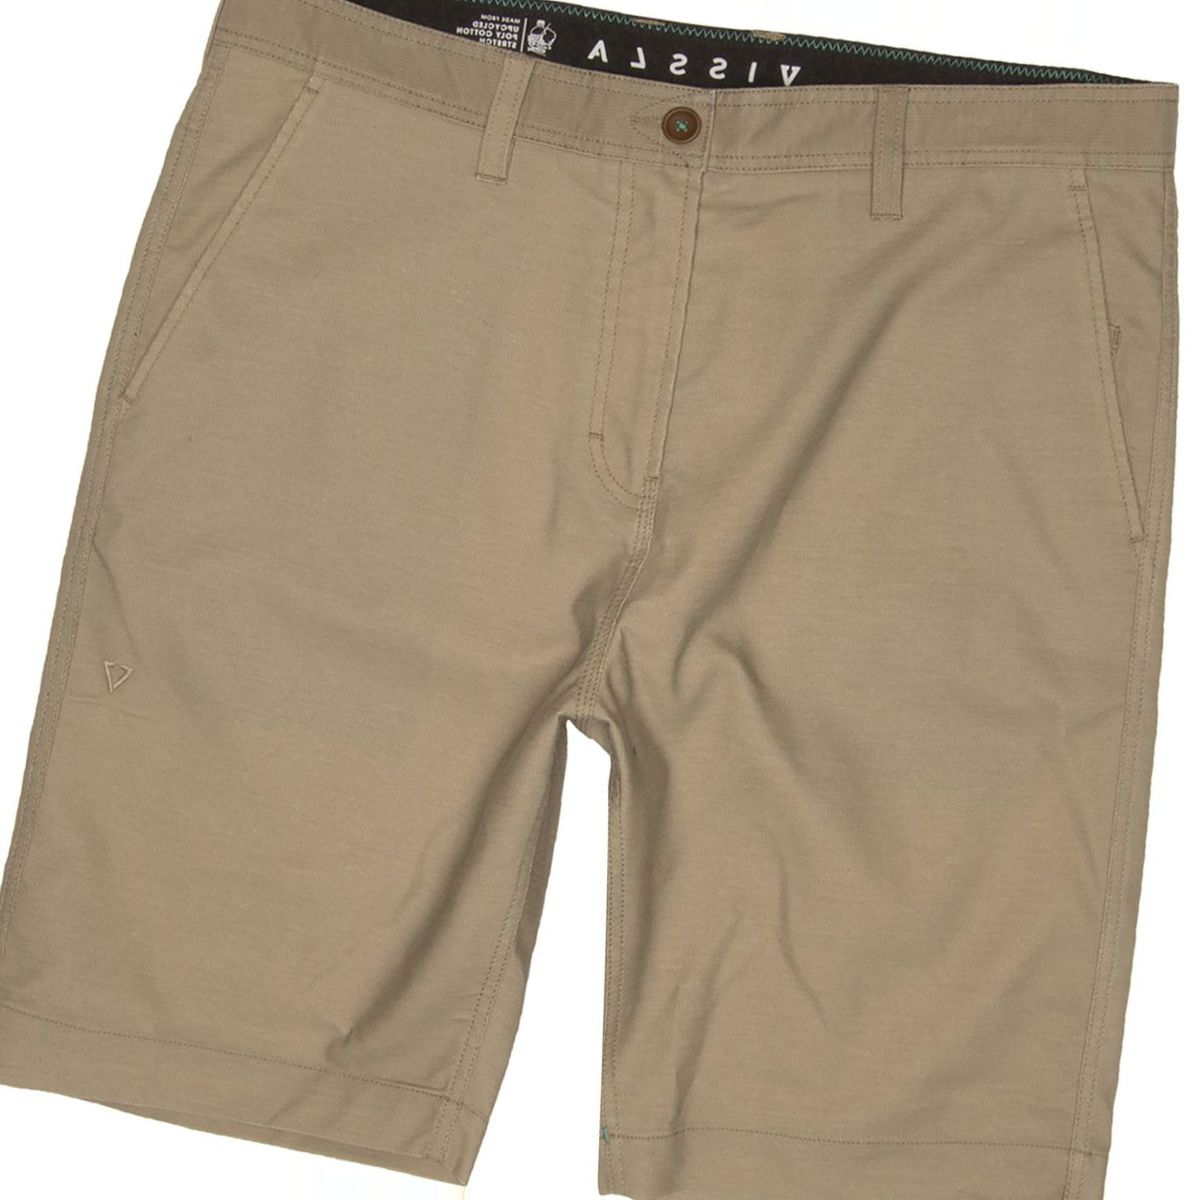 Vissla Caves Hybrid 20in Walkshort - Men's